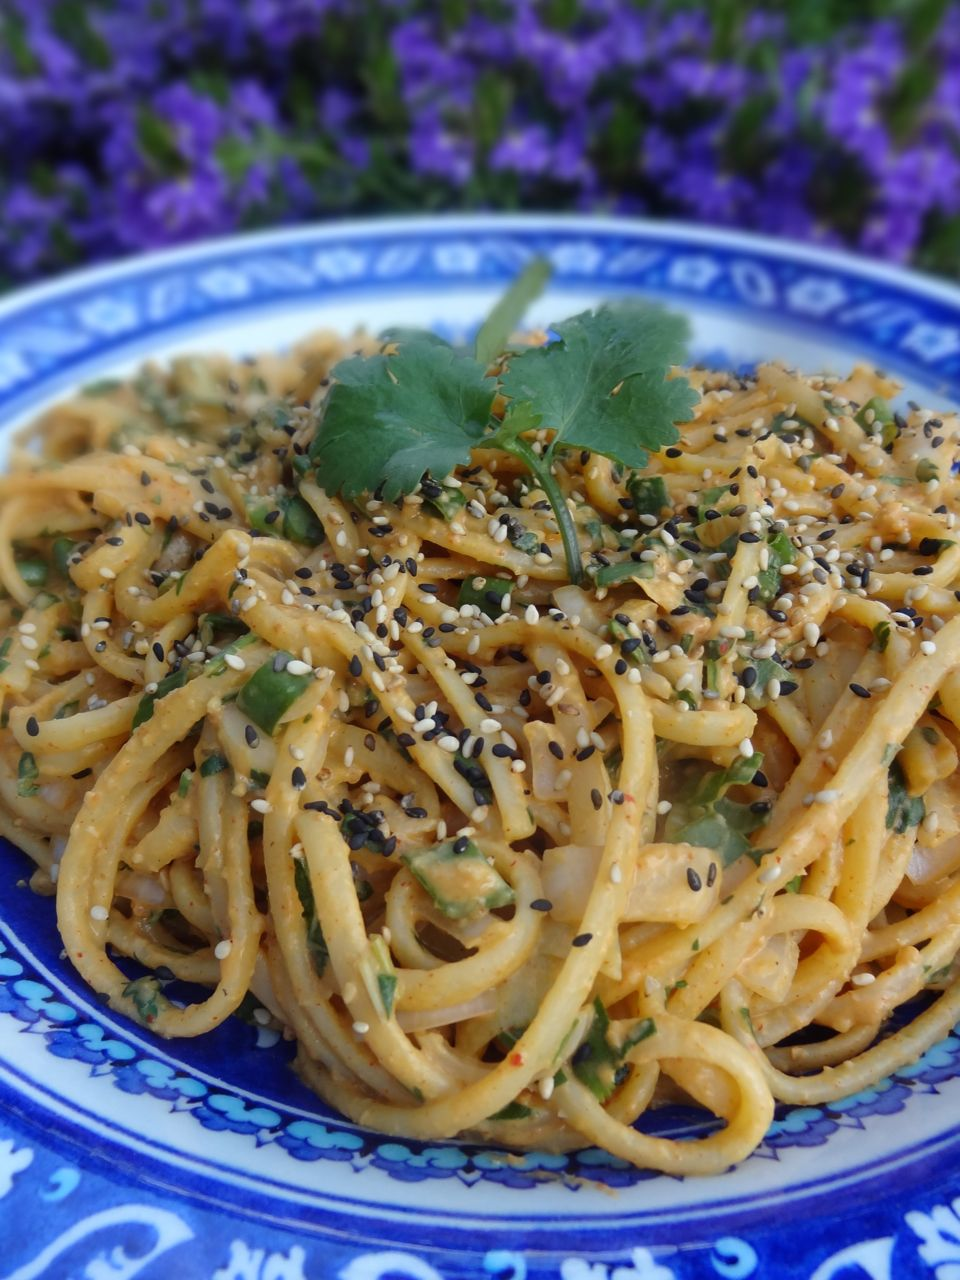 Scrumpdillyicious: Cold Noodles with Spicy Red Curry & Peanut Sauce